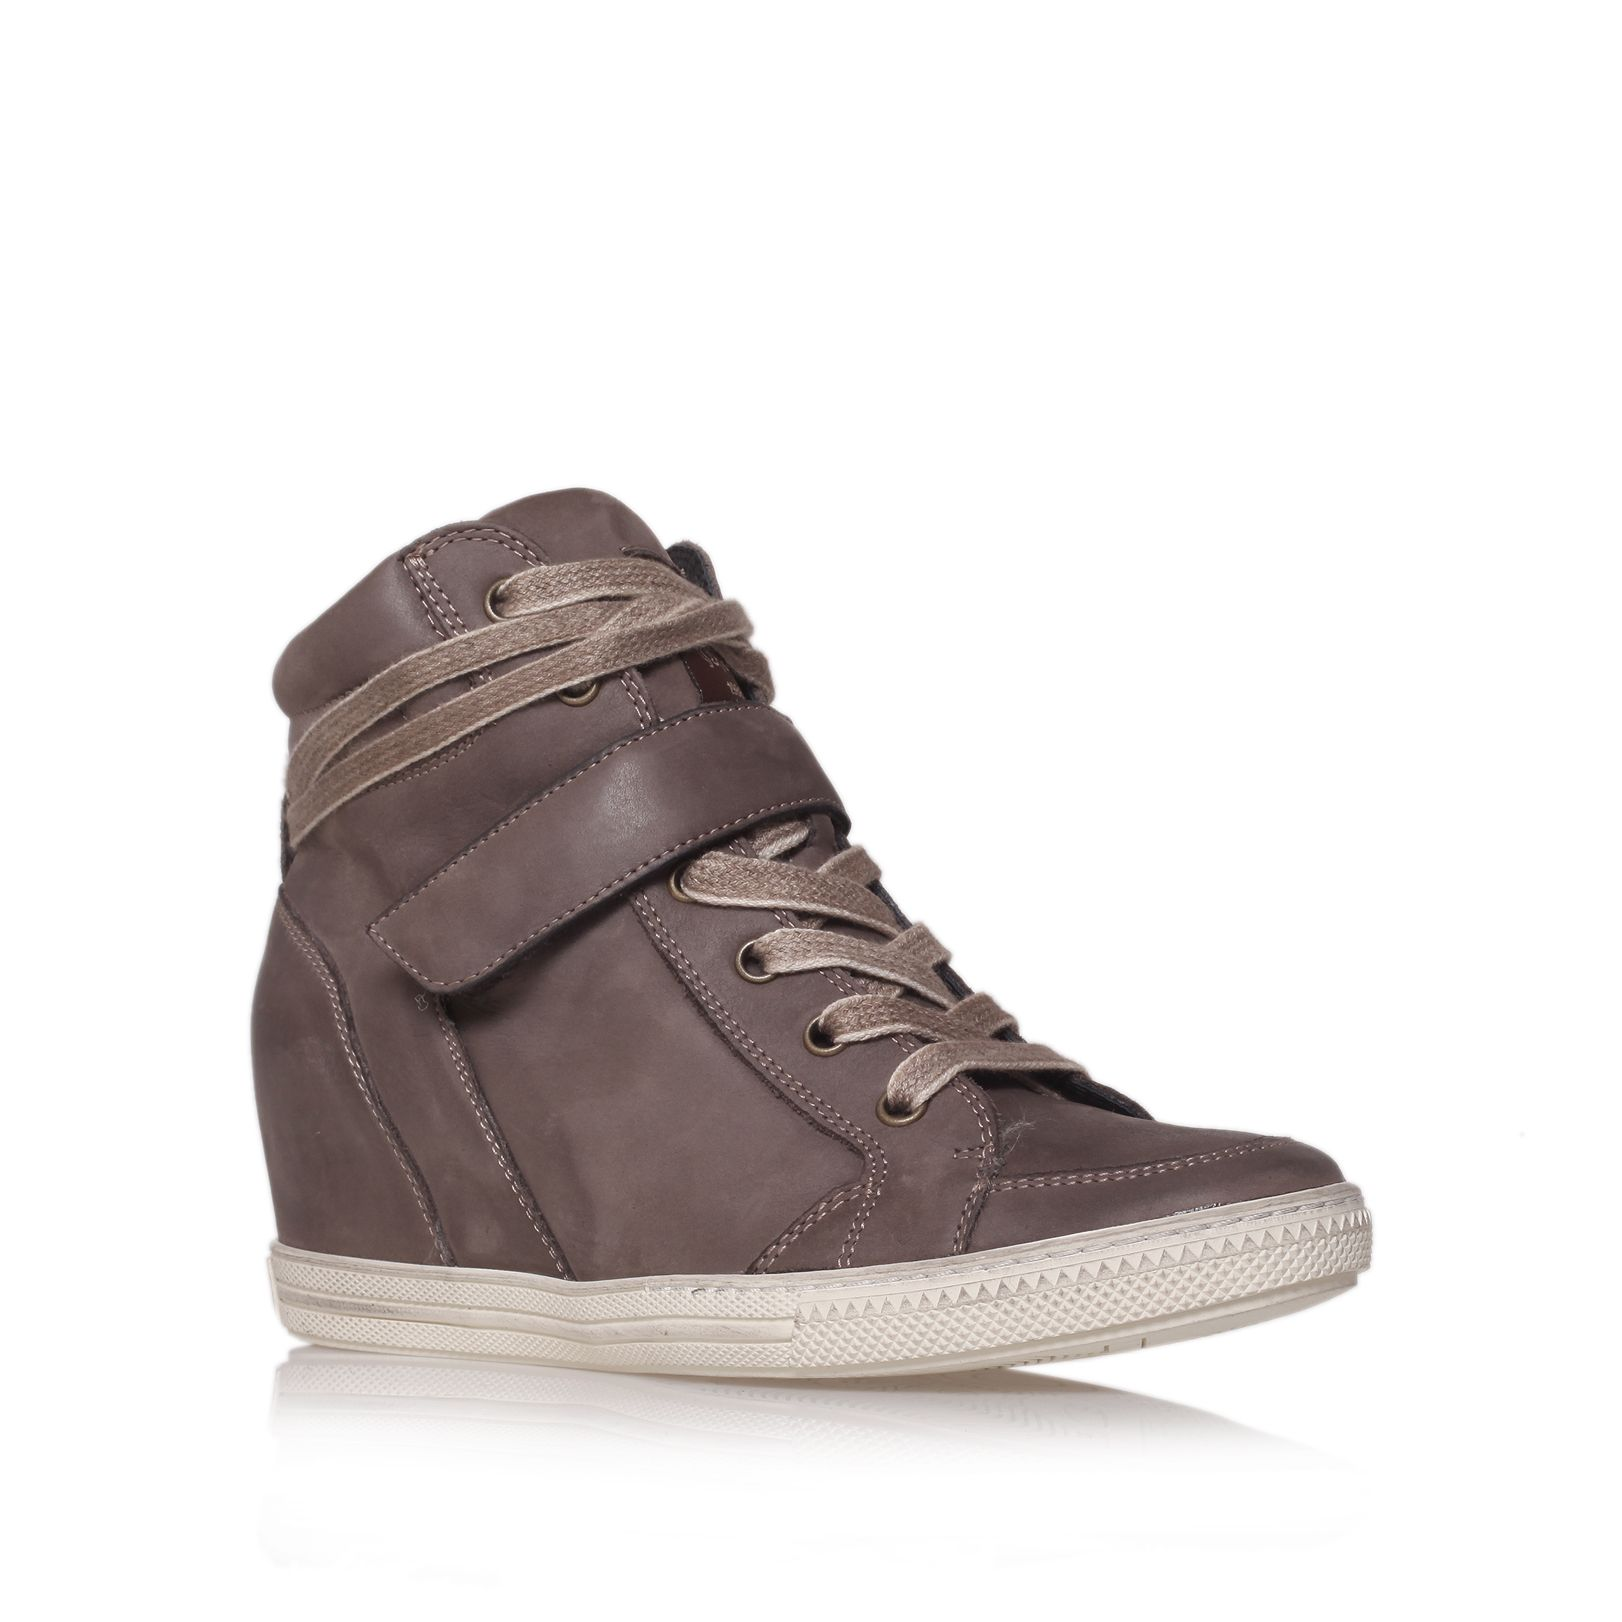 paul green penelope hitop wedge trainer shoes in brown light grey lyst. Black Bedroom Furniture Sets. Home Design Ideas